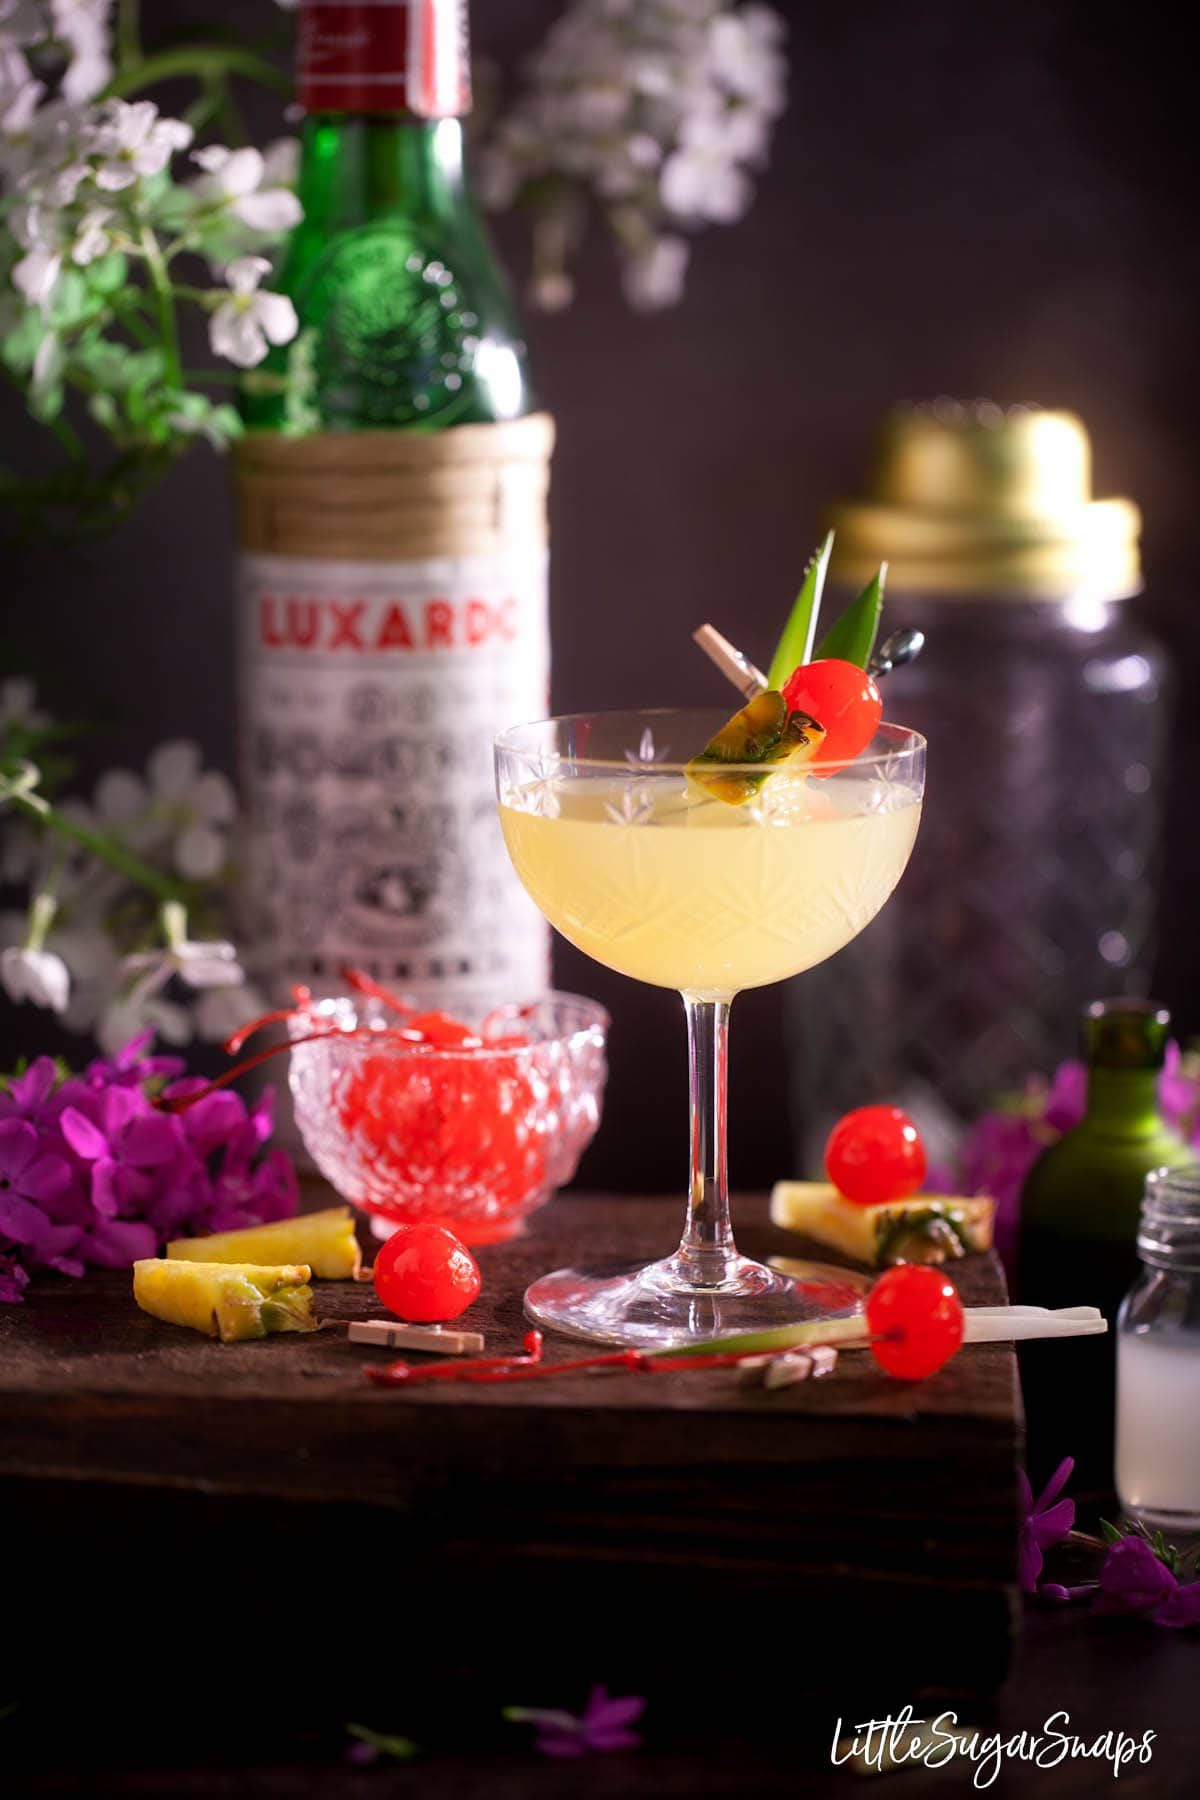 A gin, pineapple and cherry cocktail garnished with fresh pineapple and maraschino cherry.